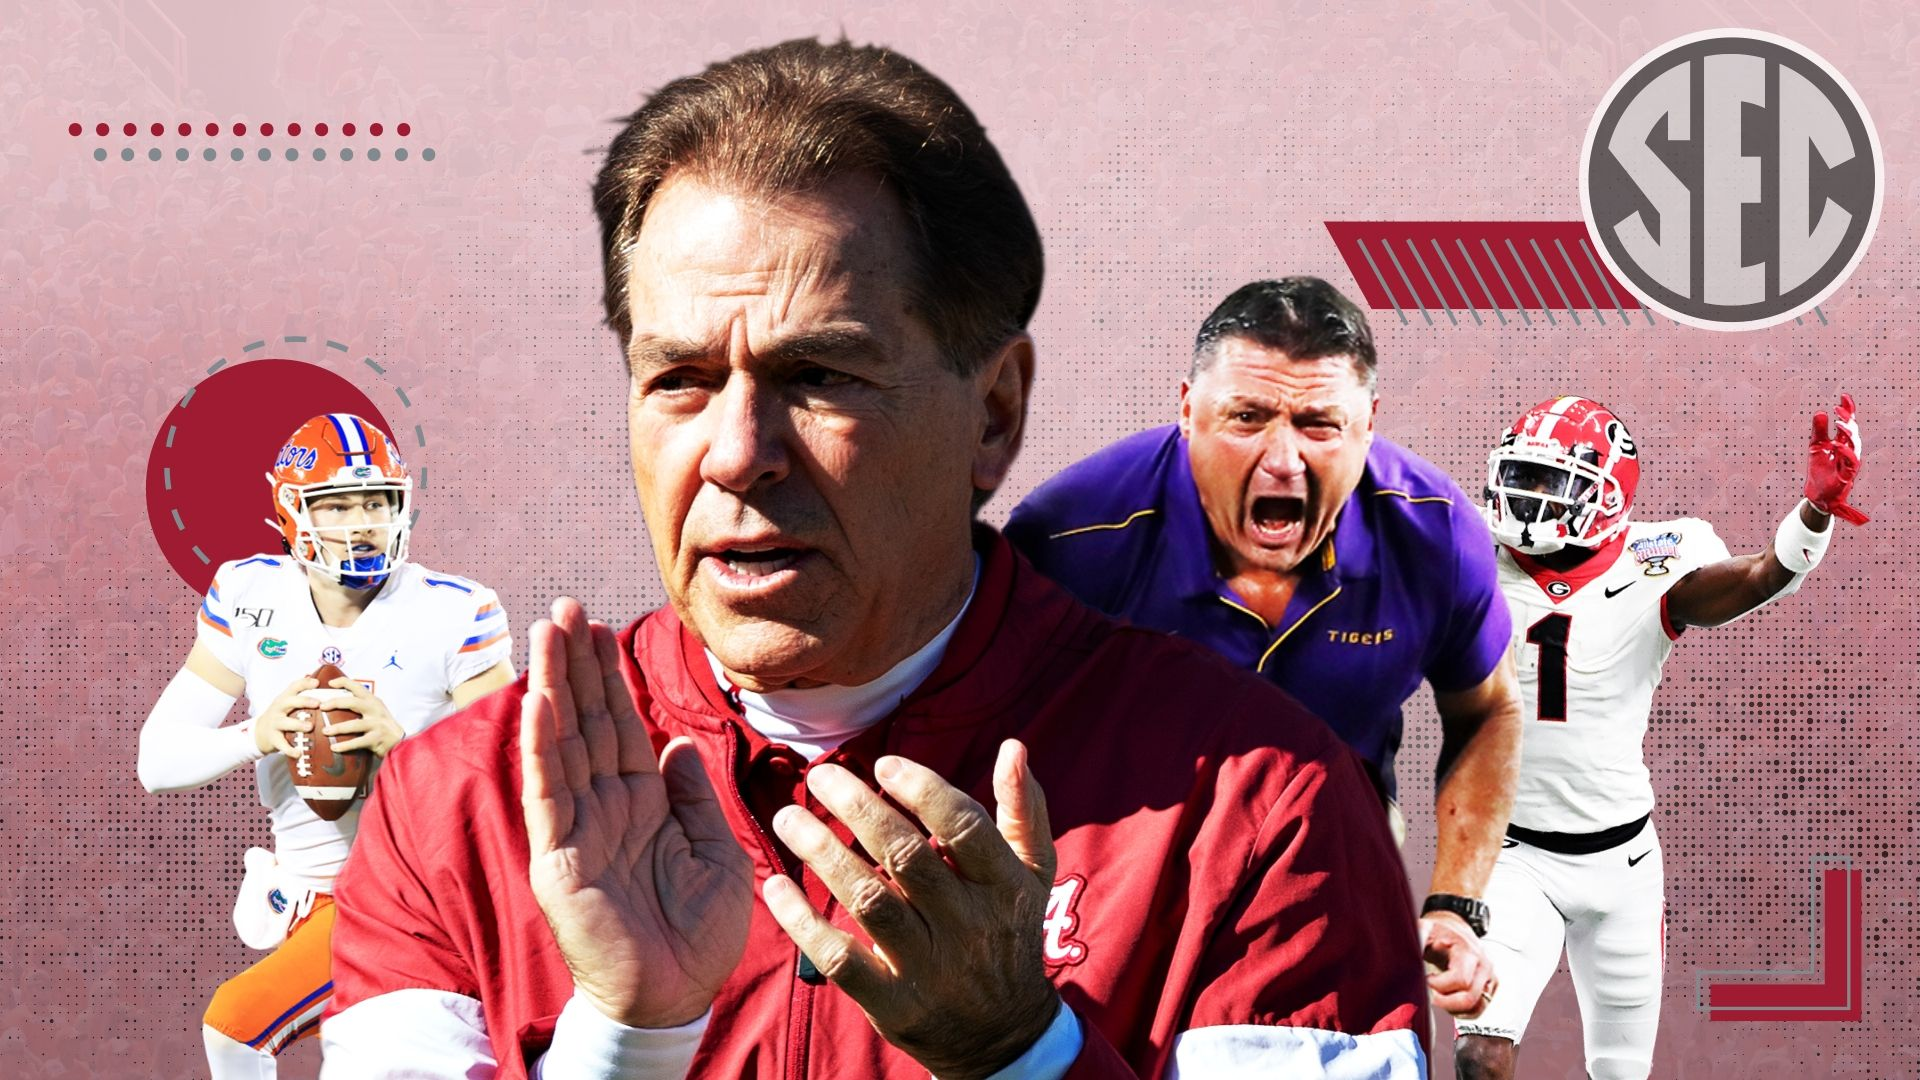 SEC preview: Is Alabama still considered the favorite?